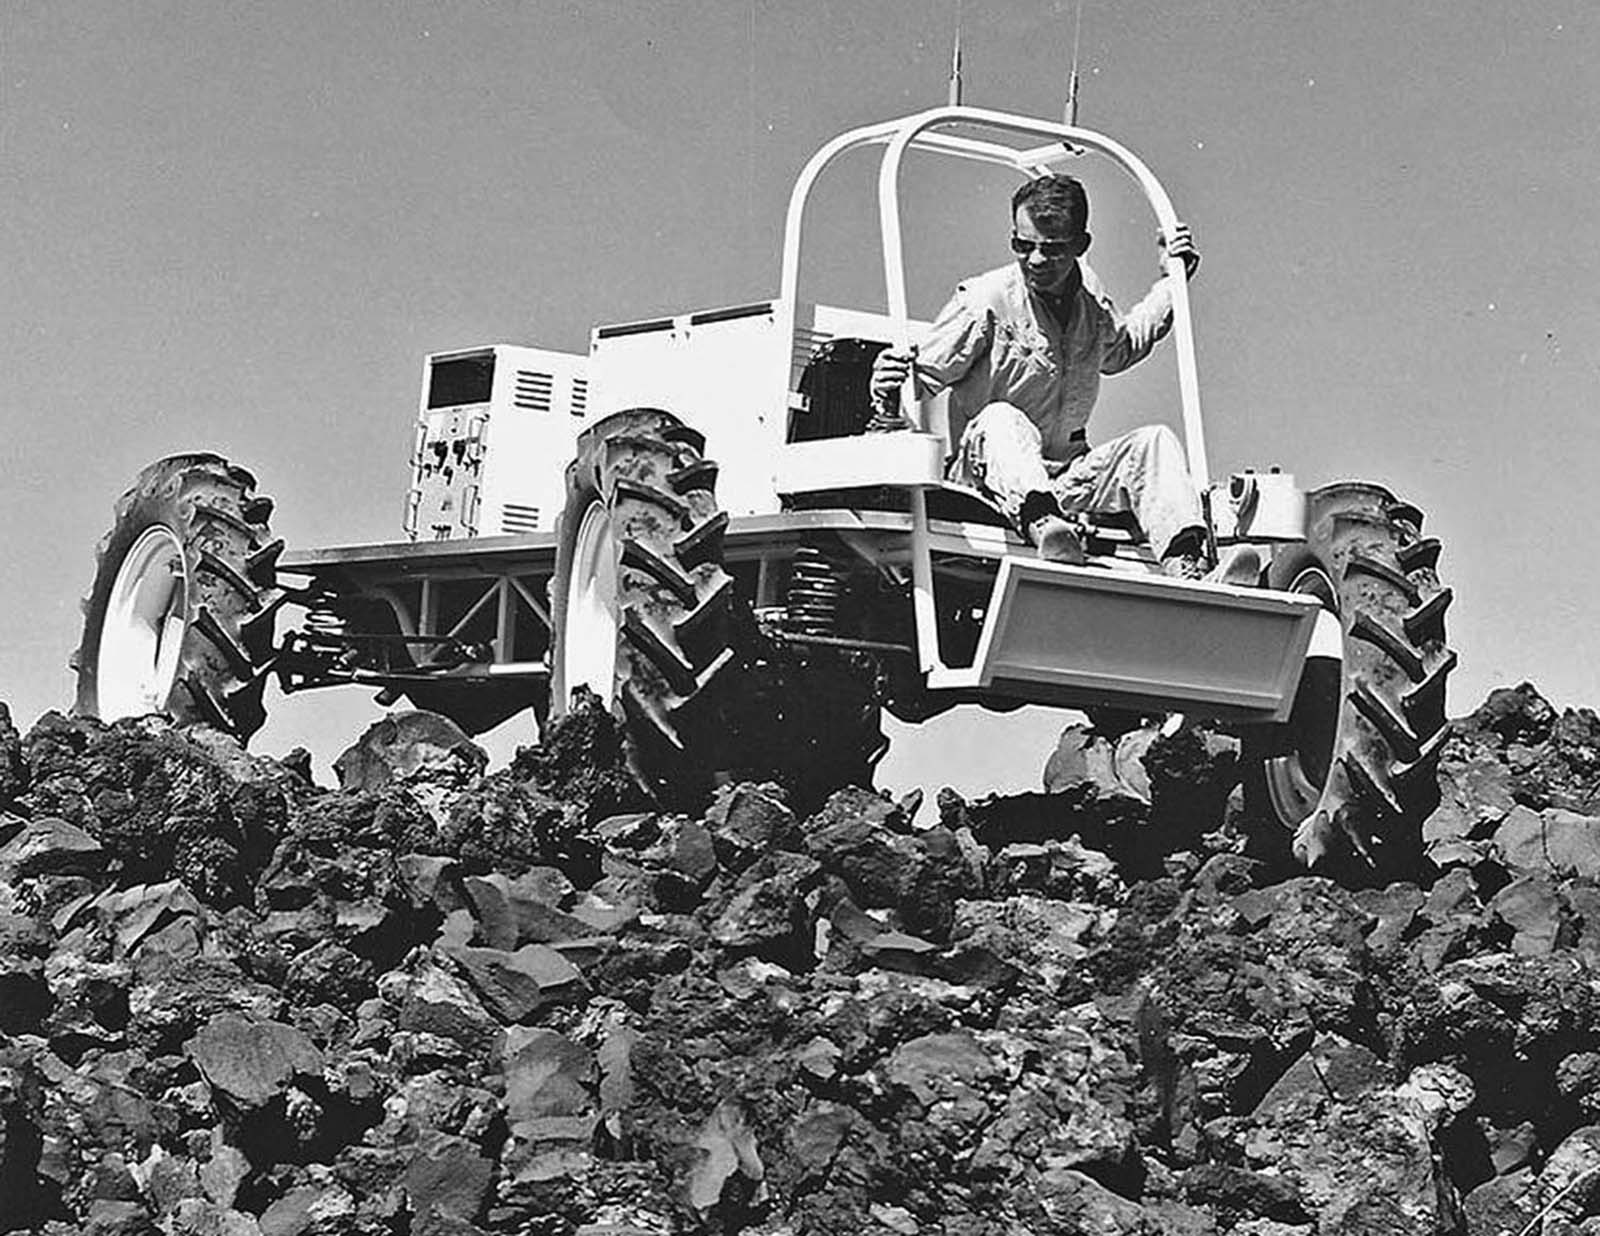 The hand-constructed Explorer vehicle, made by the astrogeology branch of USGS, is field tested in June 1967 on an extremely blocky lava flow just west of Hank's Trading Post, near Flagstaff, Arizona.